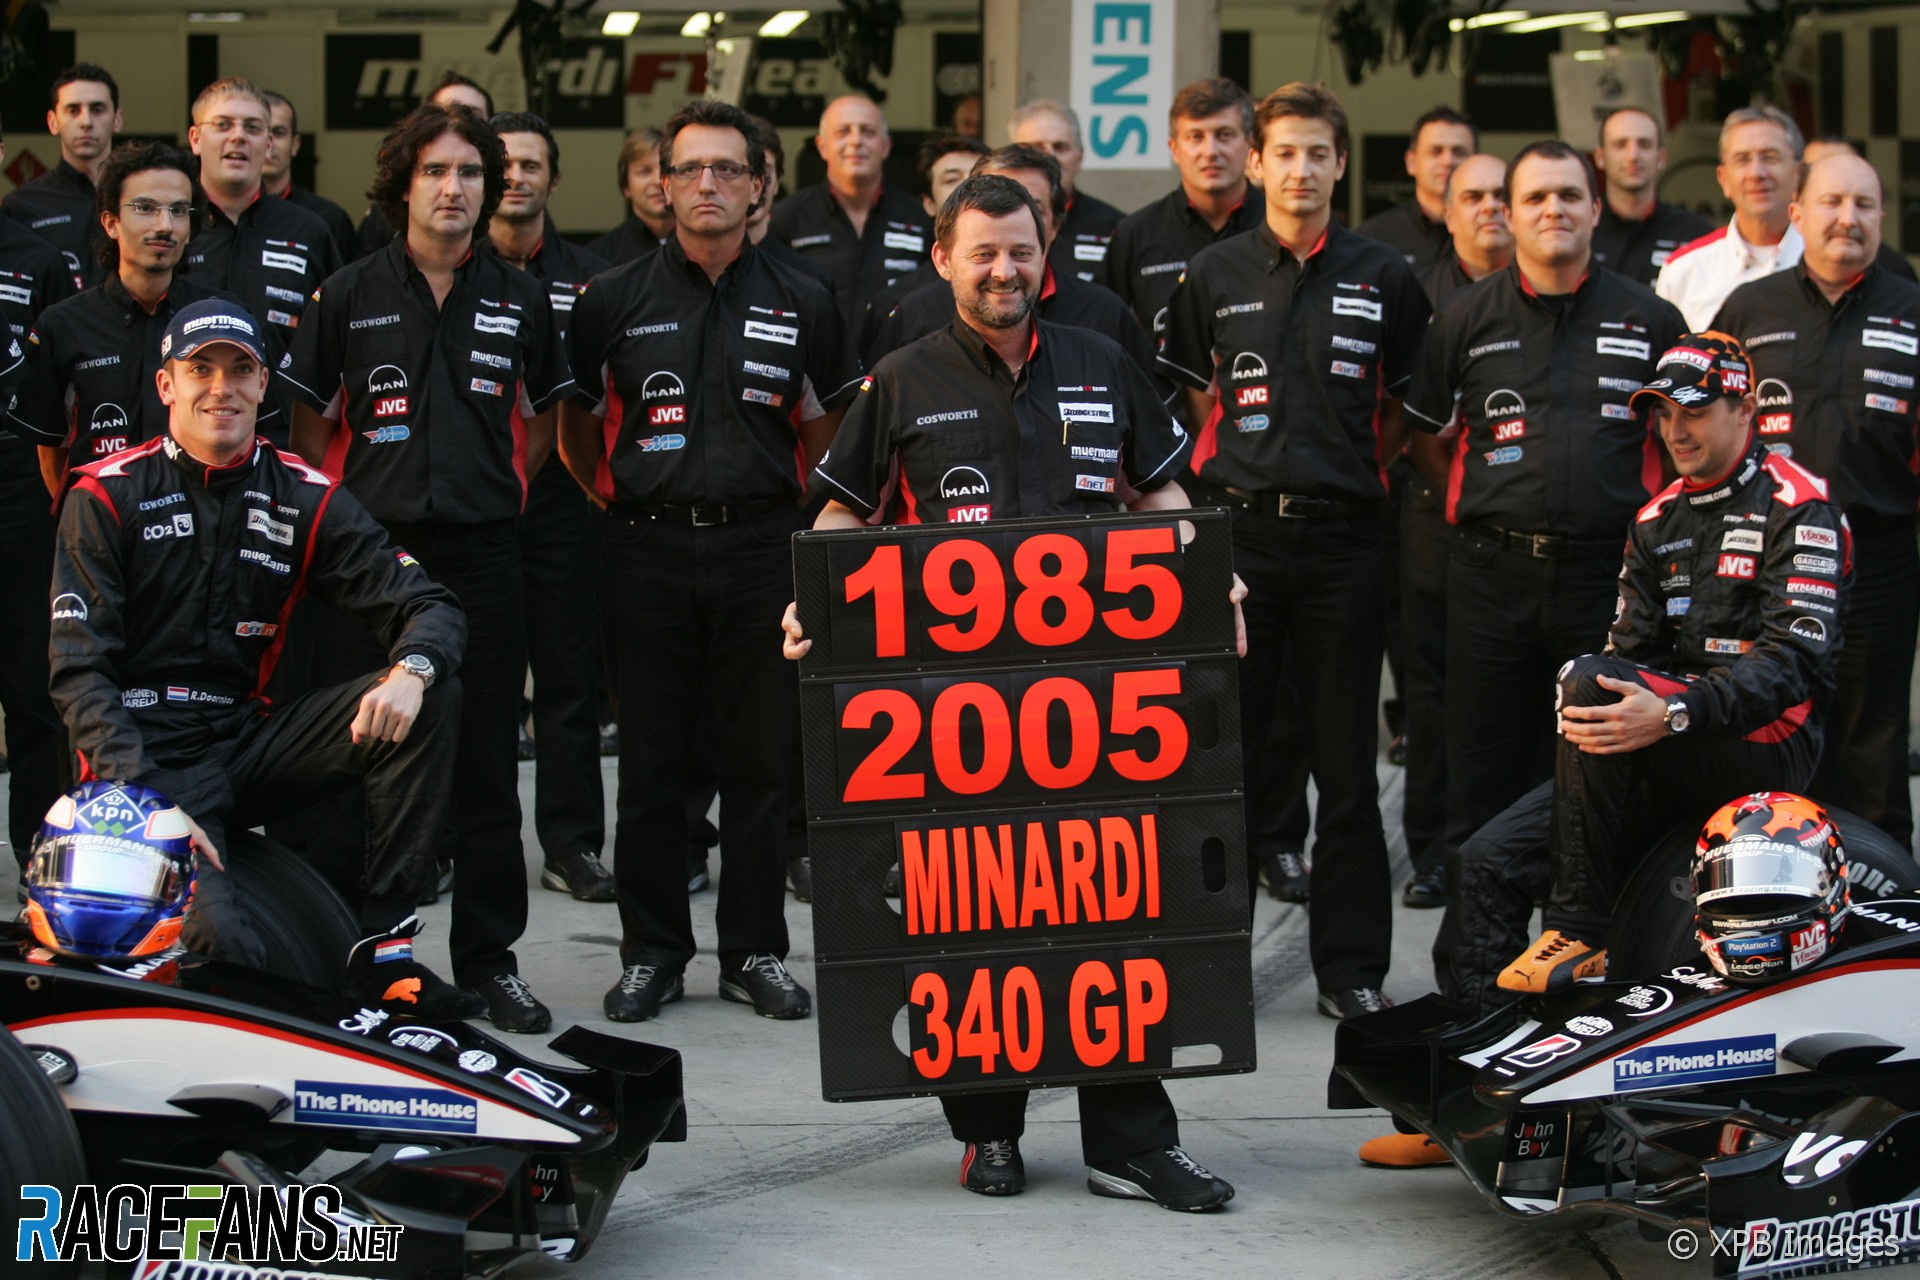 The last days of Minardi - Part one: How F1's ultimate underdogs went out fighting · RaceFans